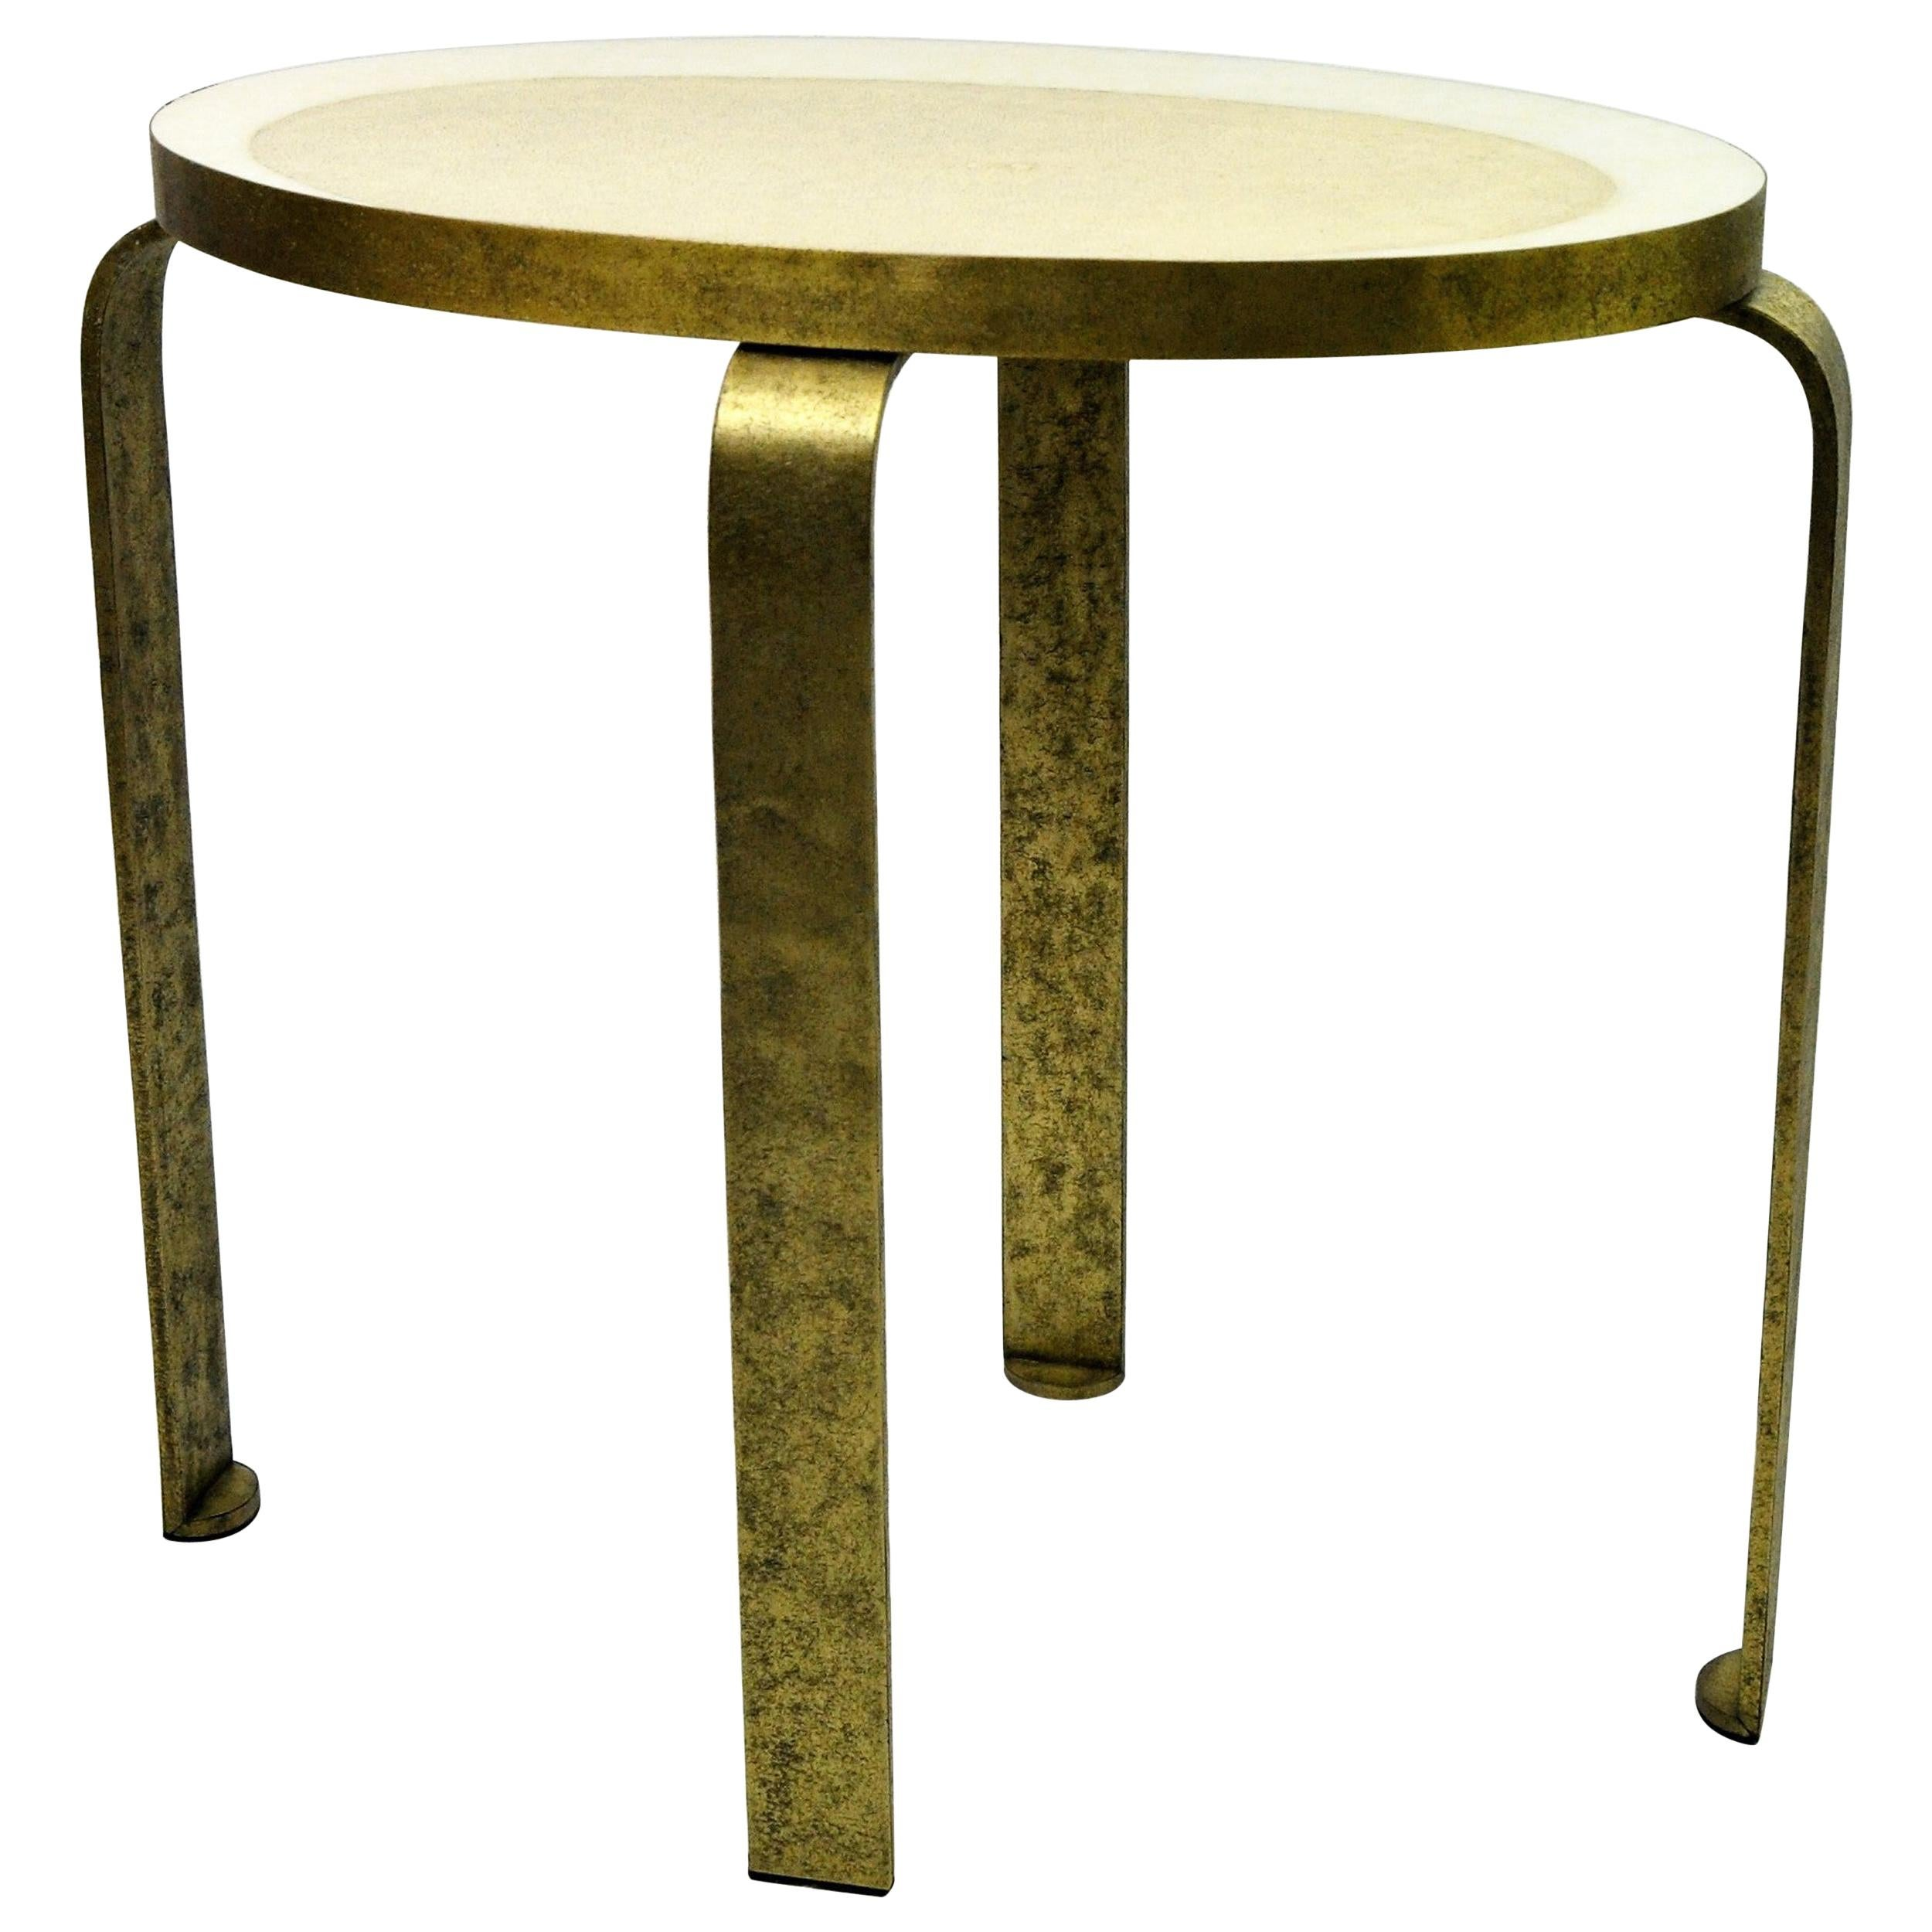 Side Table Eliptus in Shagreen and Textured Brass by Ginger Brown